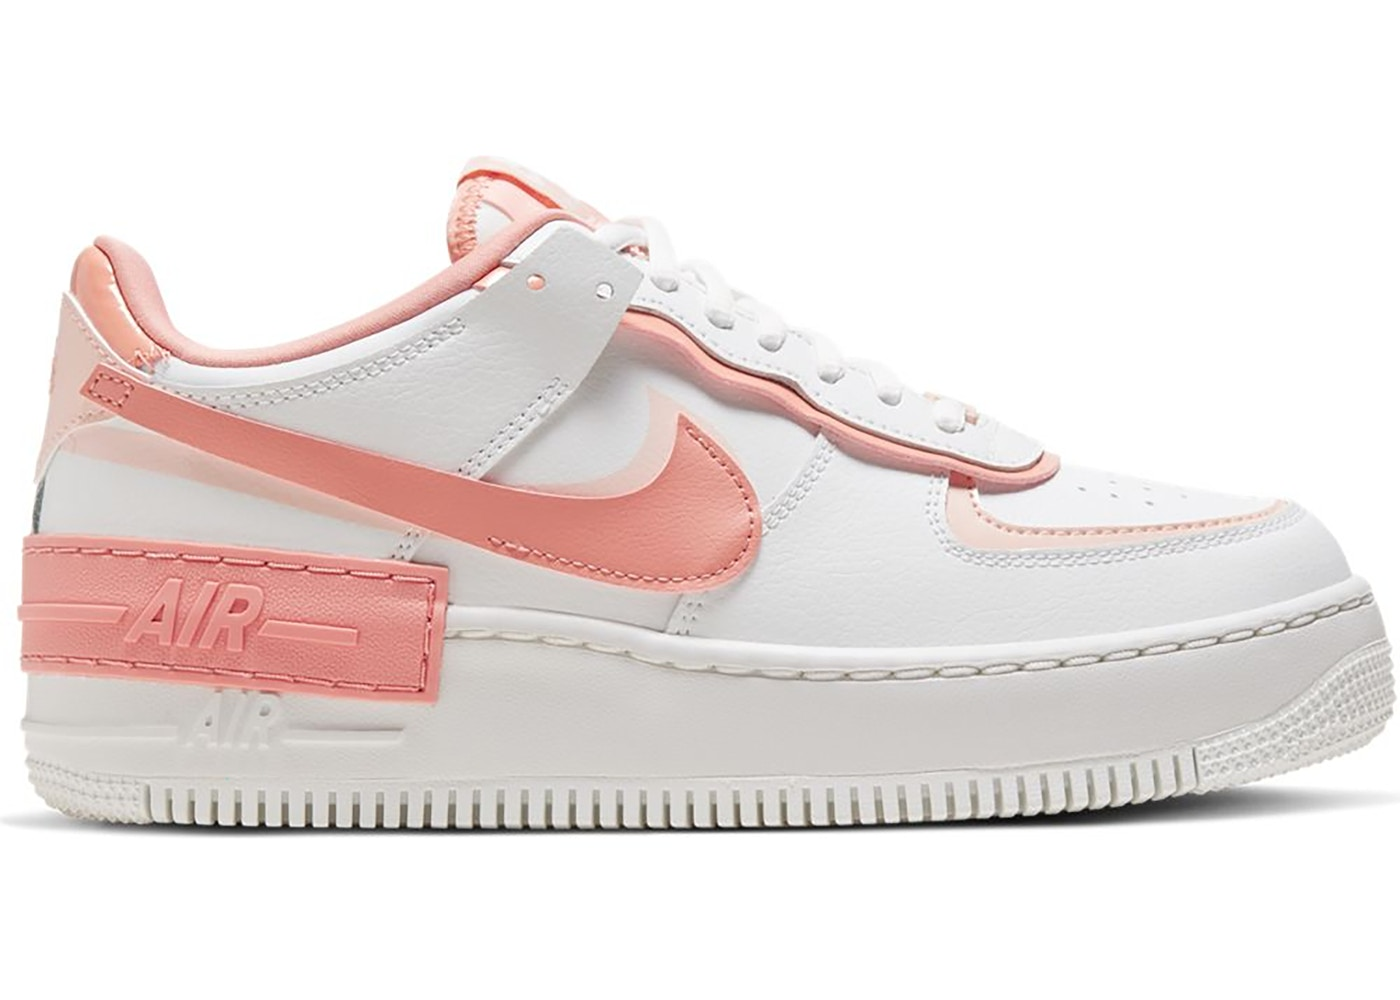 Nike Air Force 1 Shadow White Coral Pink W Cj1641 101 An ode to early japanese investors of the company. nike air force 1 shadow white coral pink w